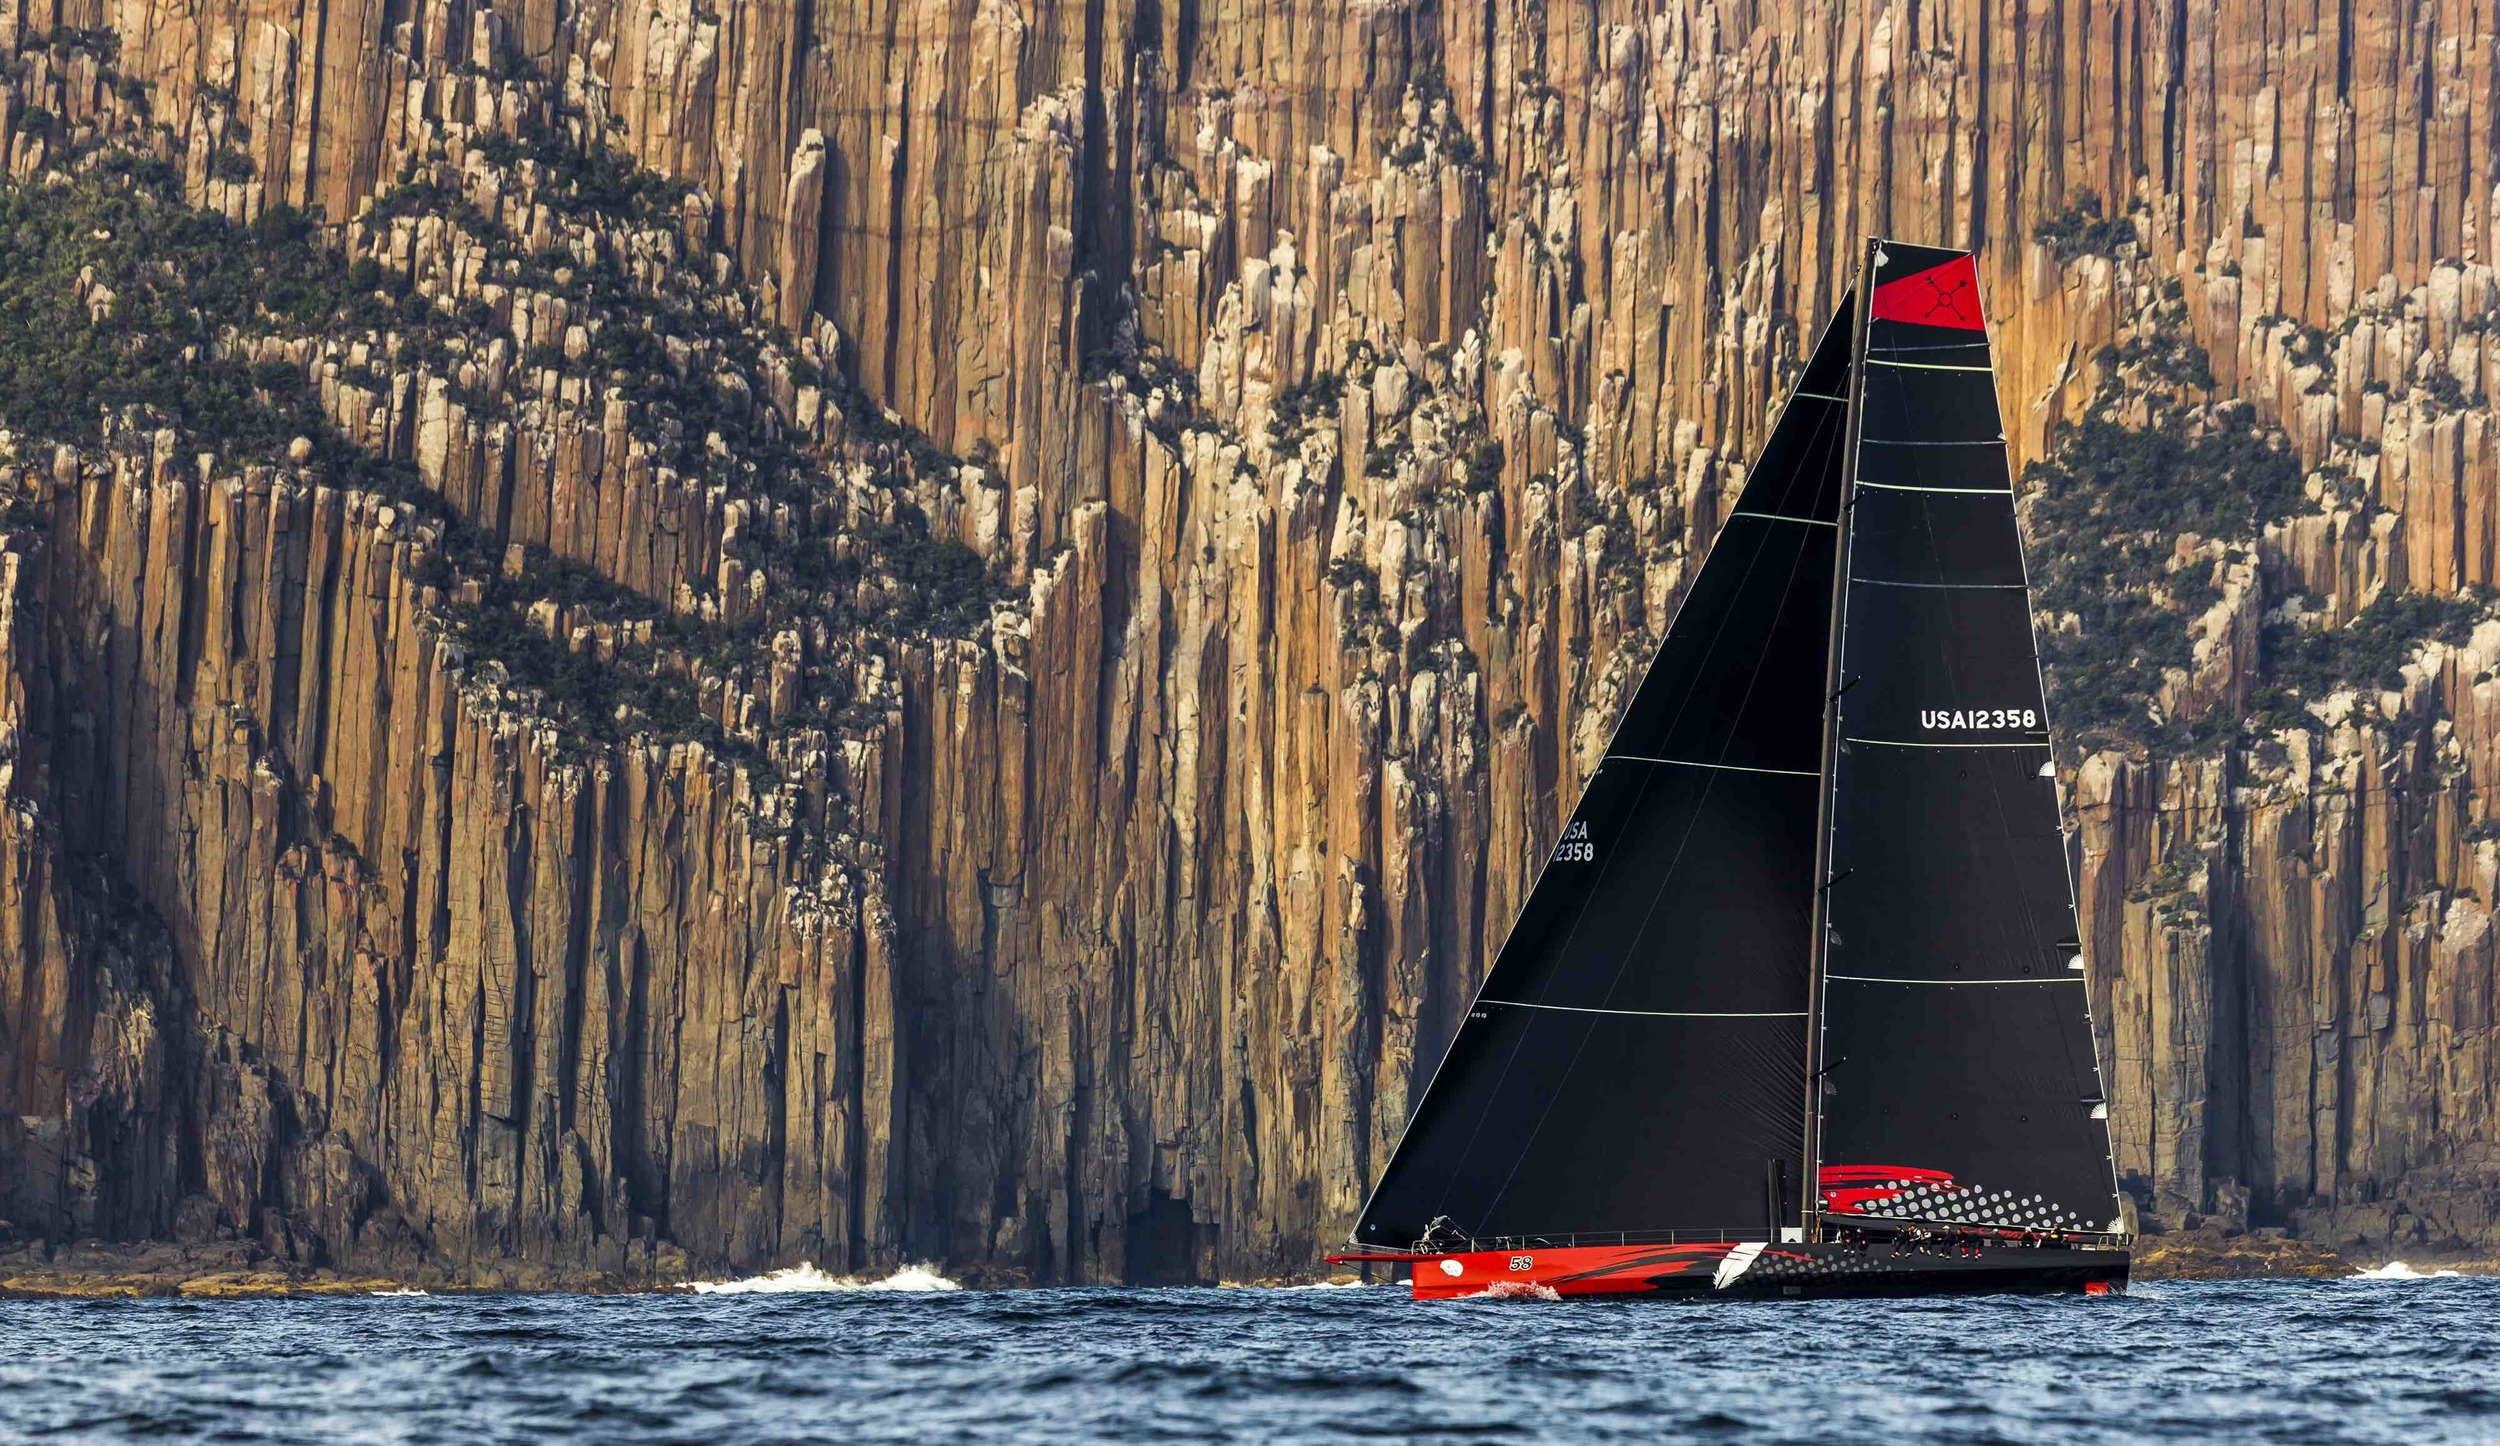 Line honours winner Comanche passing the Organ Pipes along the Tasmanian Coast in 2015 Sydney Hobart Race